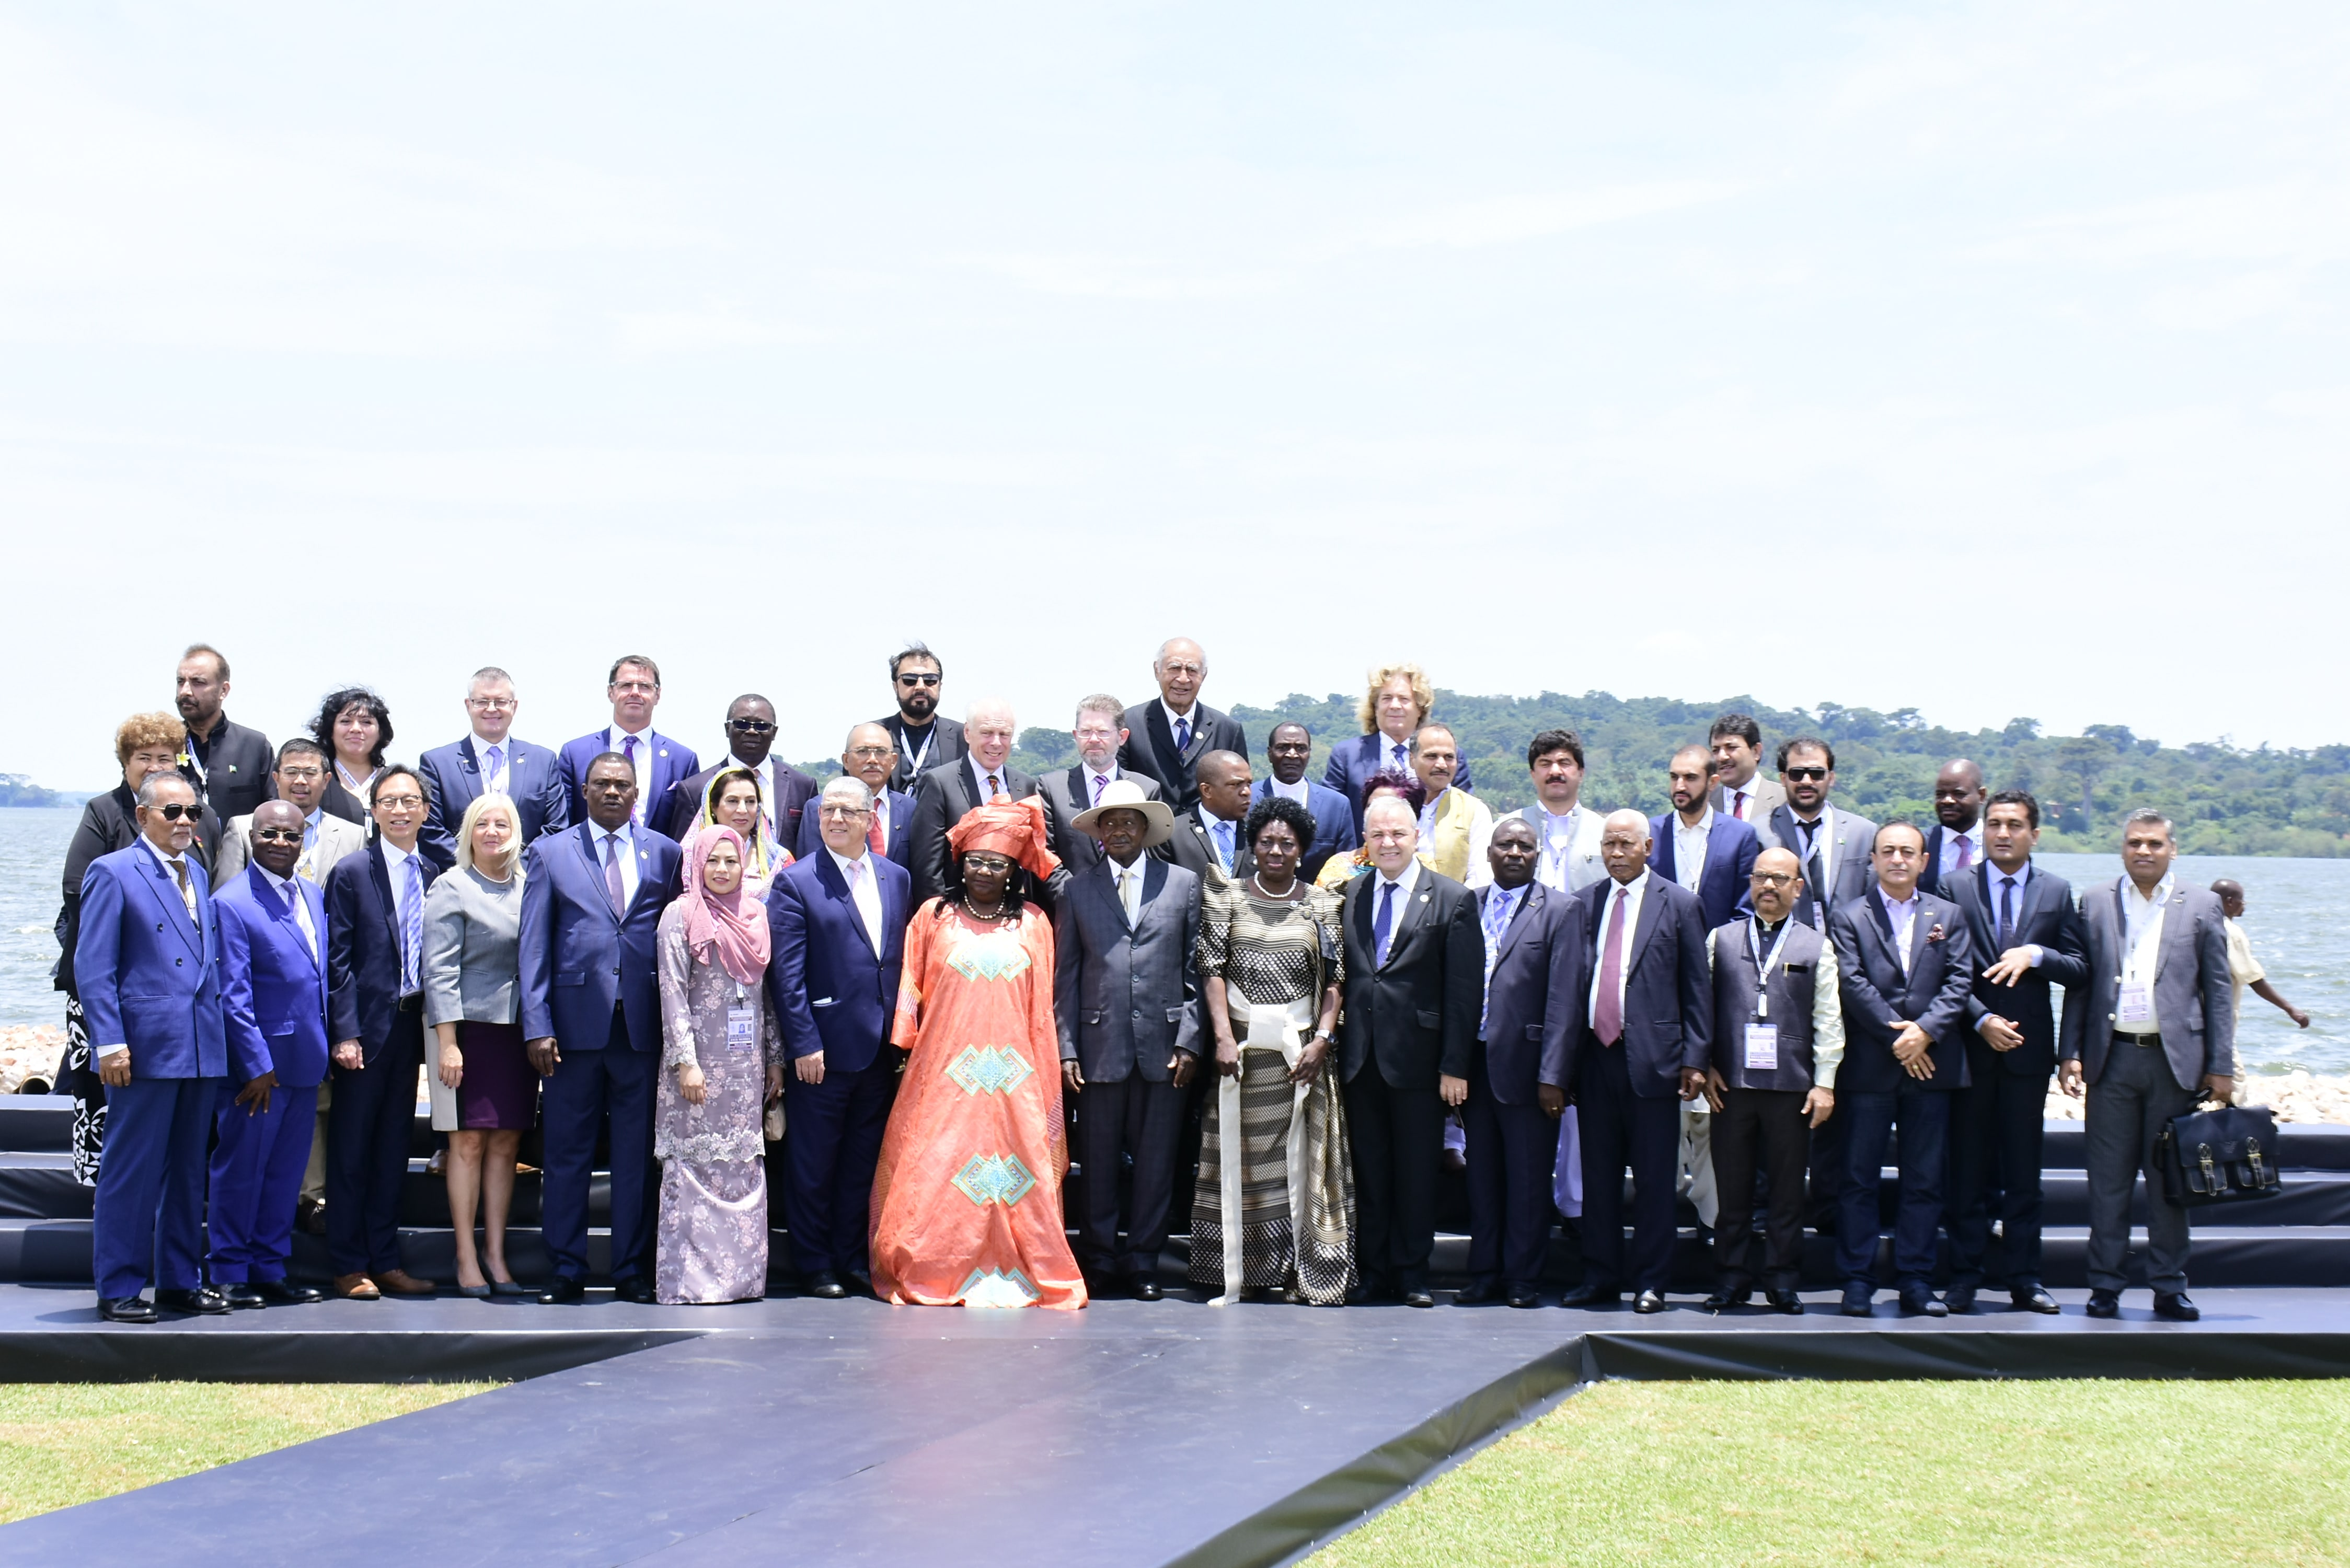 64th Commonwealth Parliamentary Conference